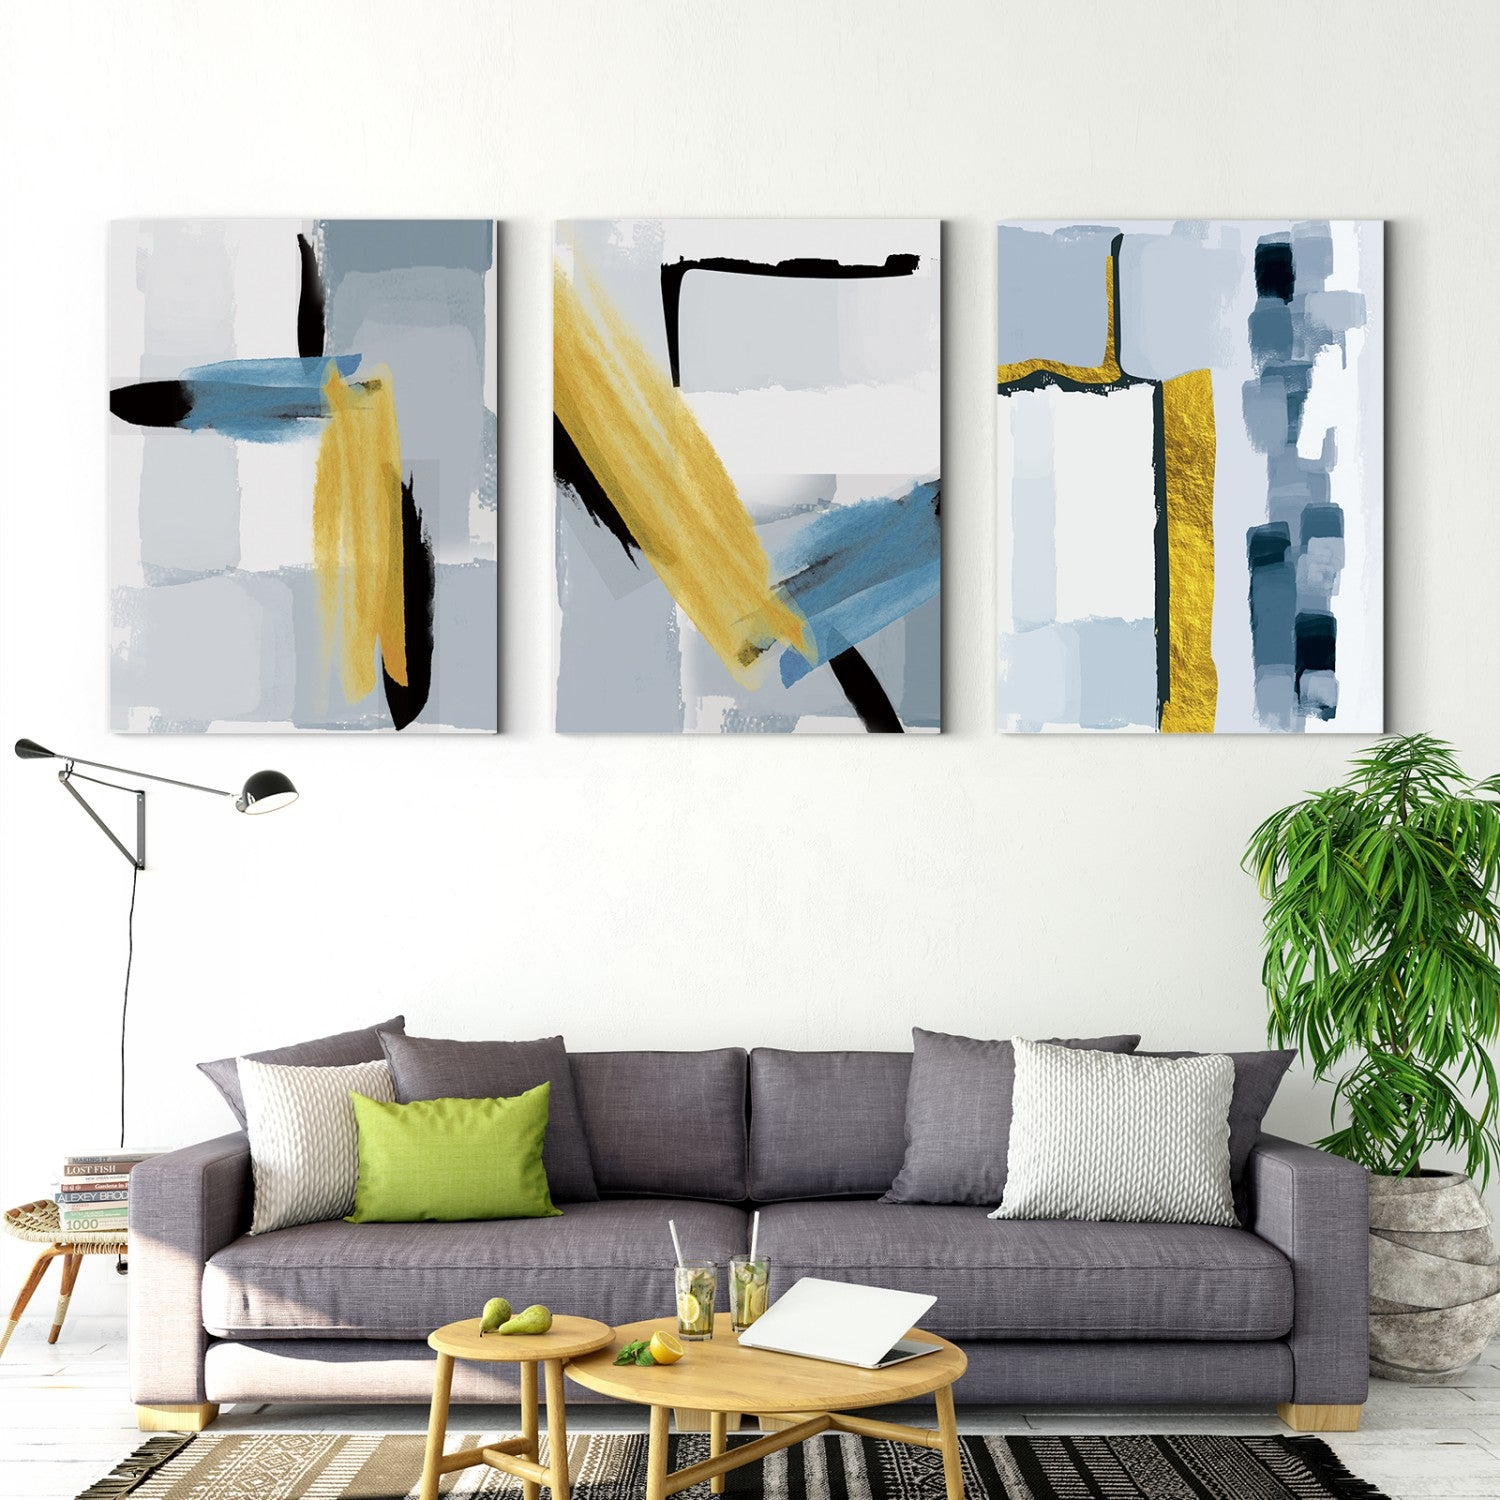 Gray and blue shades of gold light luxury minimalist abstract style Multi Panel Stretched Canvas 60